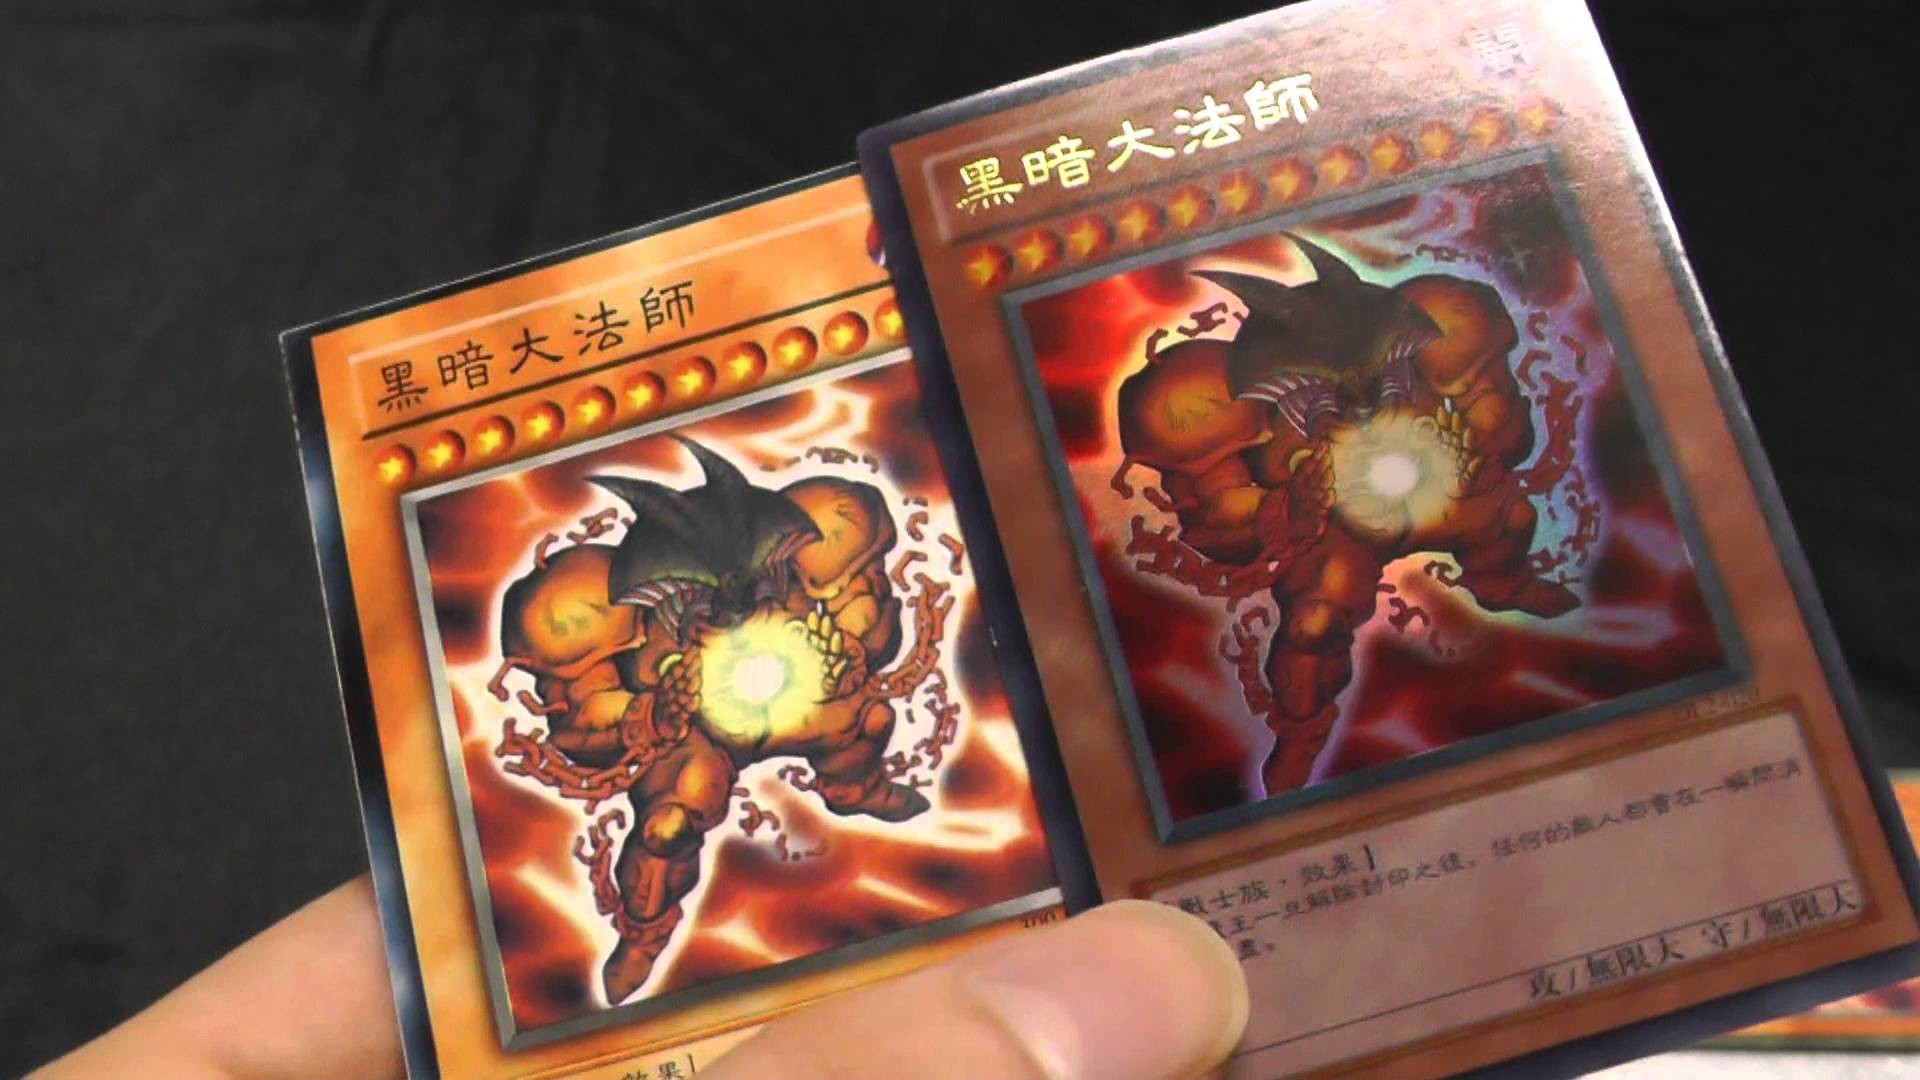 Anime Wallpaper Exodia Wallpapers Images with HD Wide Wallpapers .